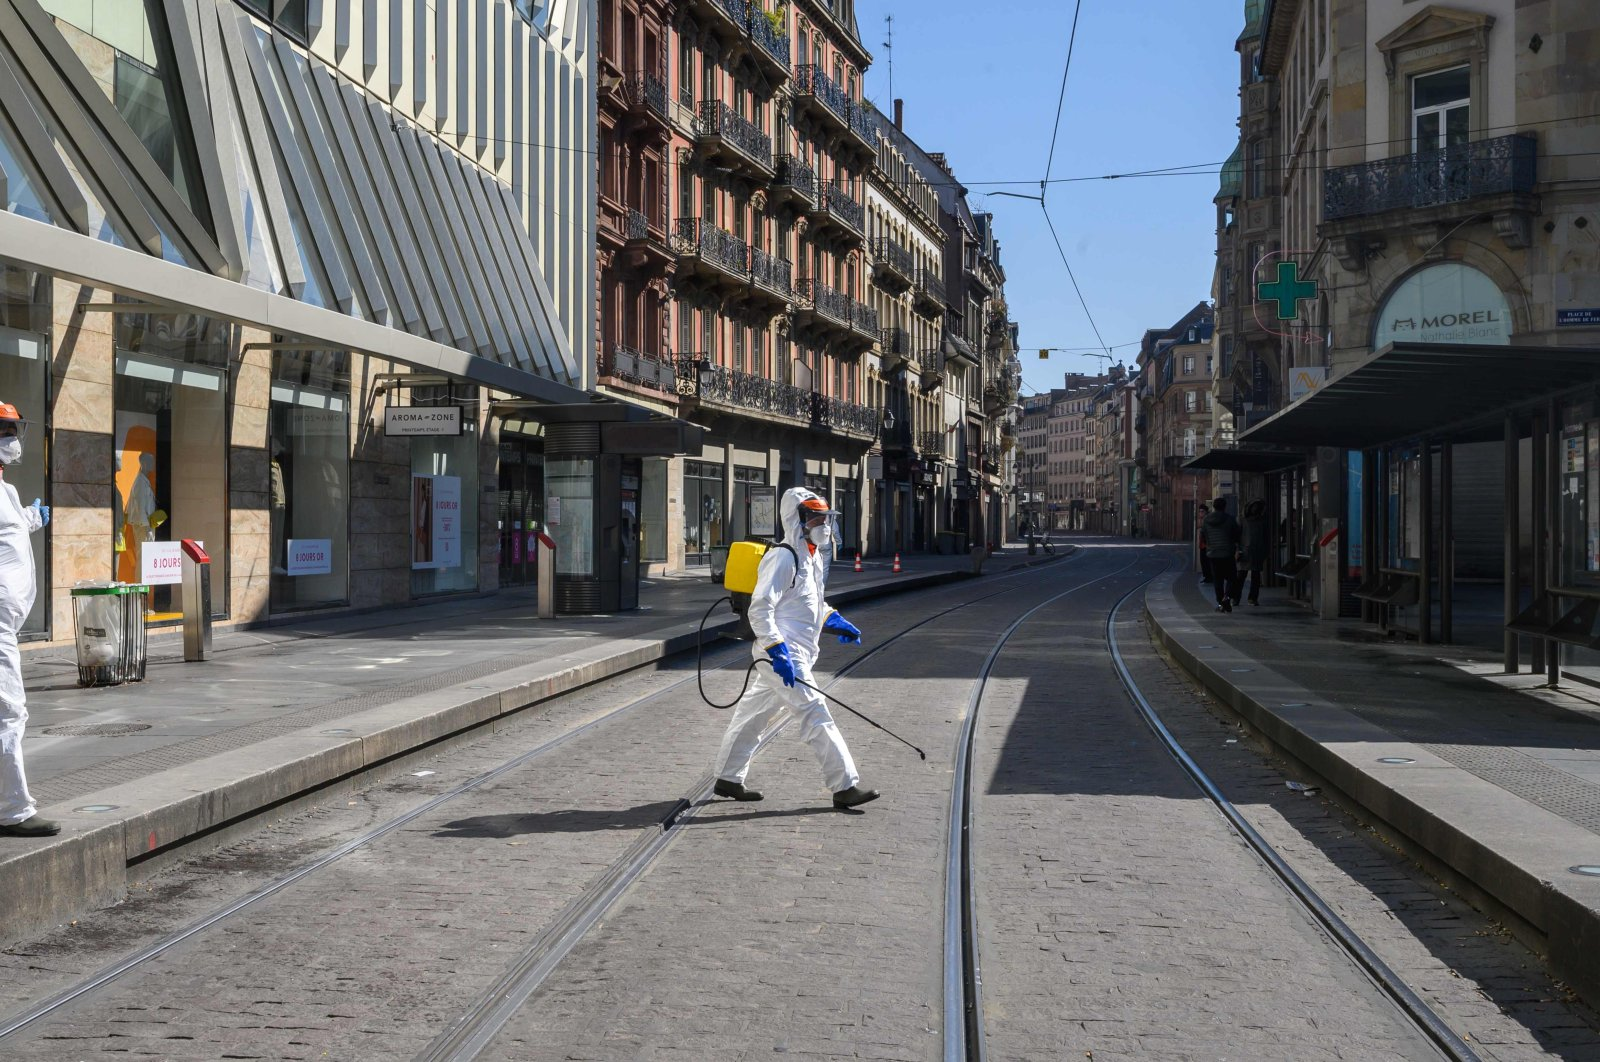 An employee wearing protective gear sprays disinfectant at a tram station in central Strasbourg on April 1, 2020, on the 16th day of a lockdown aimed at curbing the spread of the coronavirus. (AFP Photo)